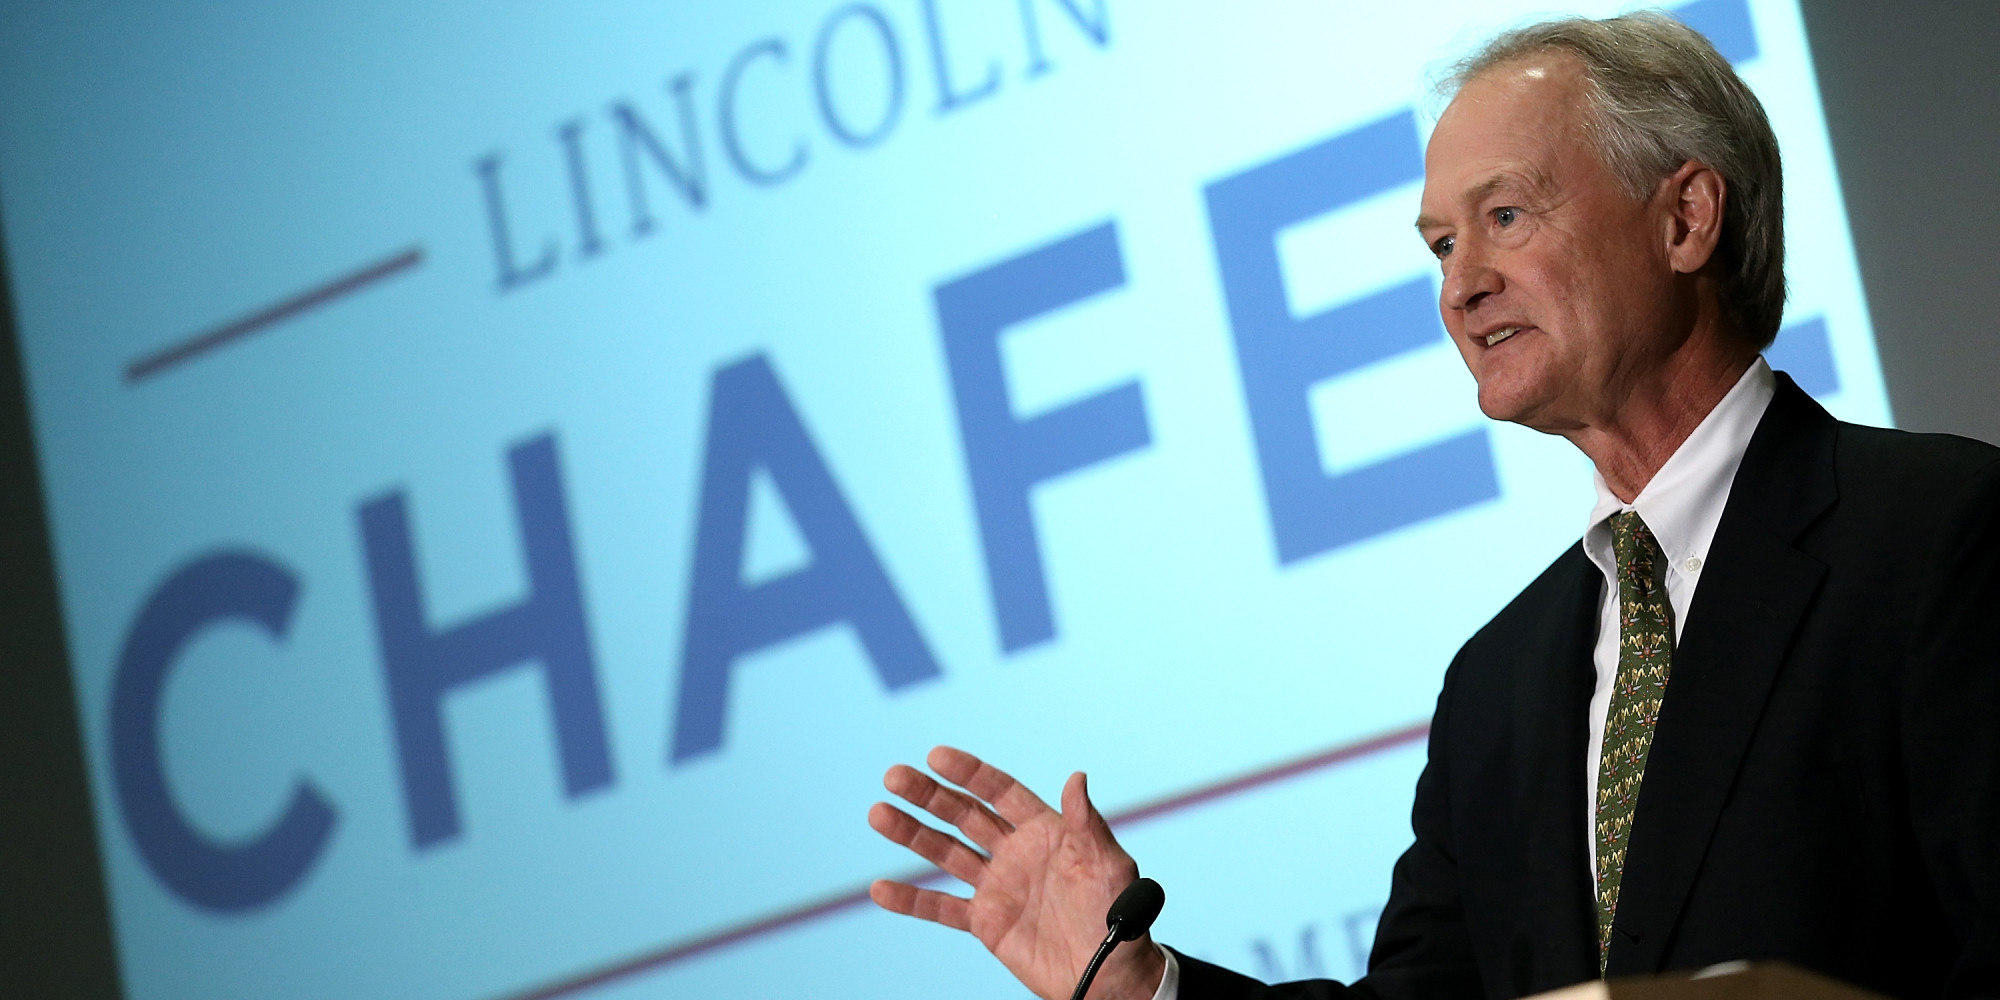 Look, the liberal media has already crowned their winner in Chafee, can we just get this over with?